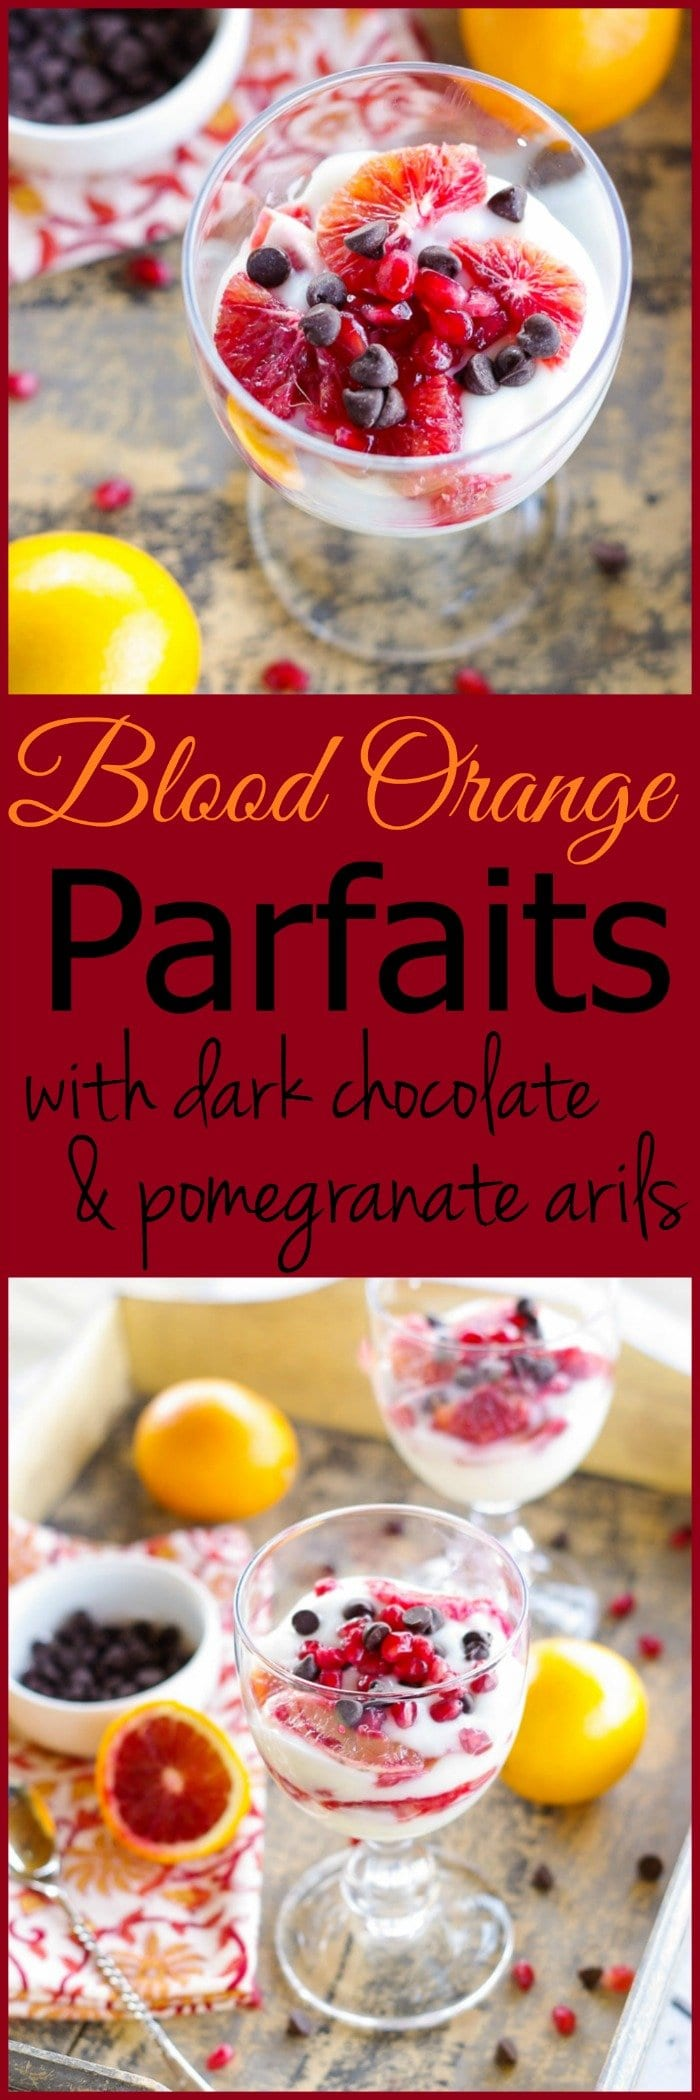 Blood Orange Parfaits with Dark Chocolate Chips & Pomegranate Arils | www.homeandplate.com | Looking for a delicious and heart healthy dessert to serve your sweetie on Valentine